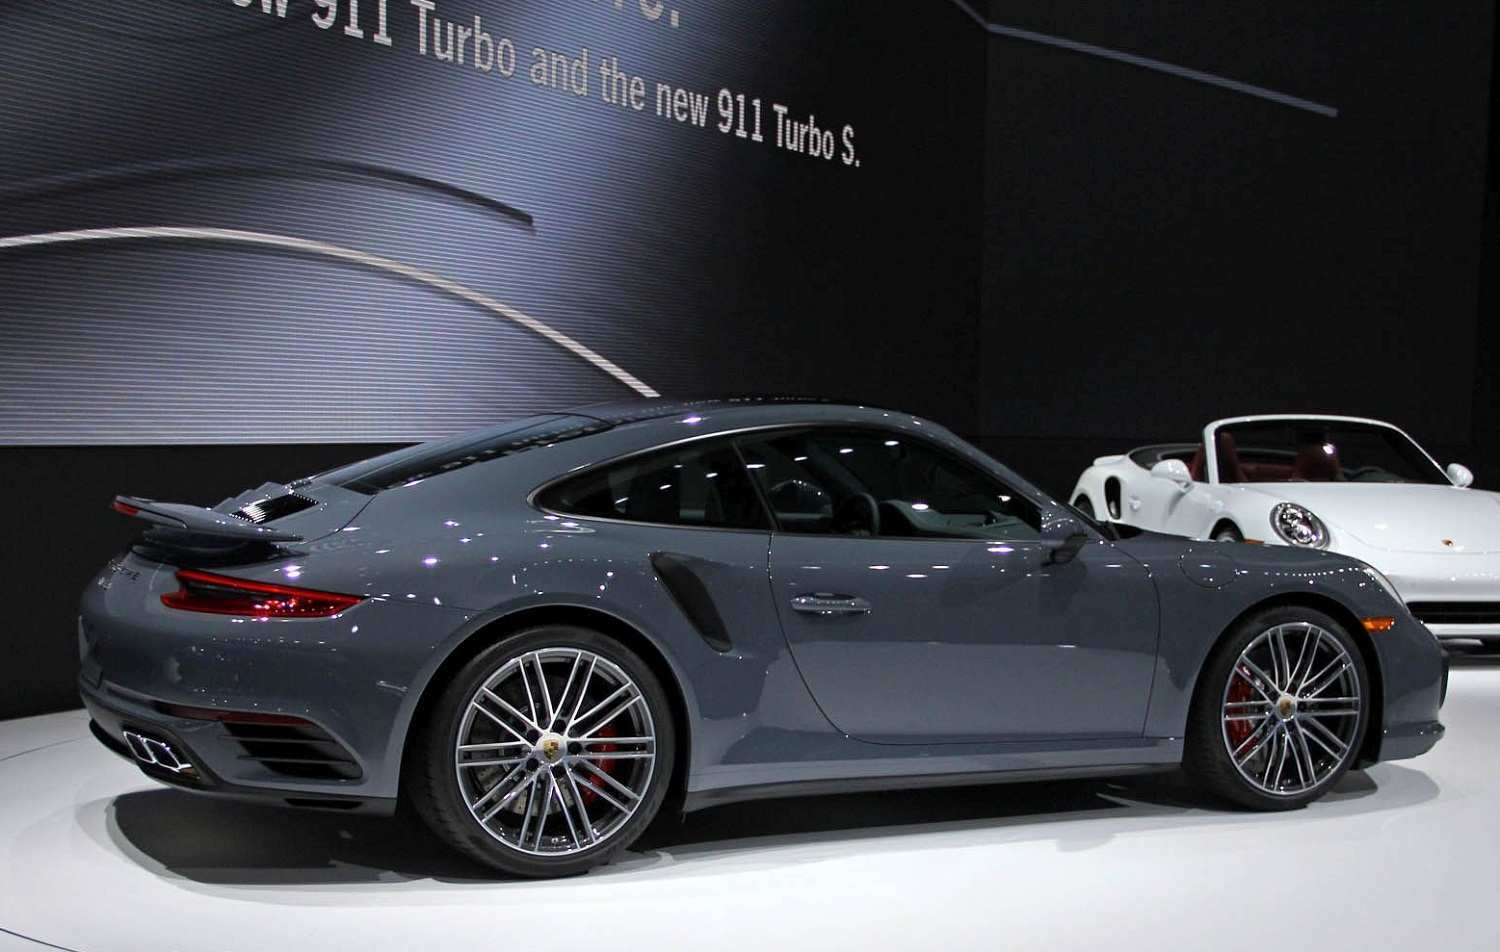 94 Concept of 2020 Porsche 911 Release Date Overview with 2020 Porsche 911 Release Date